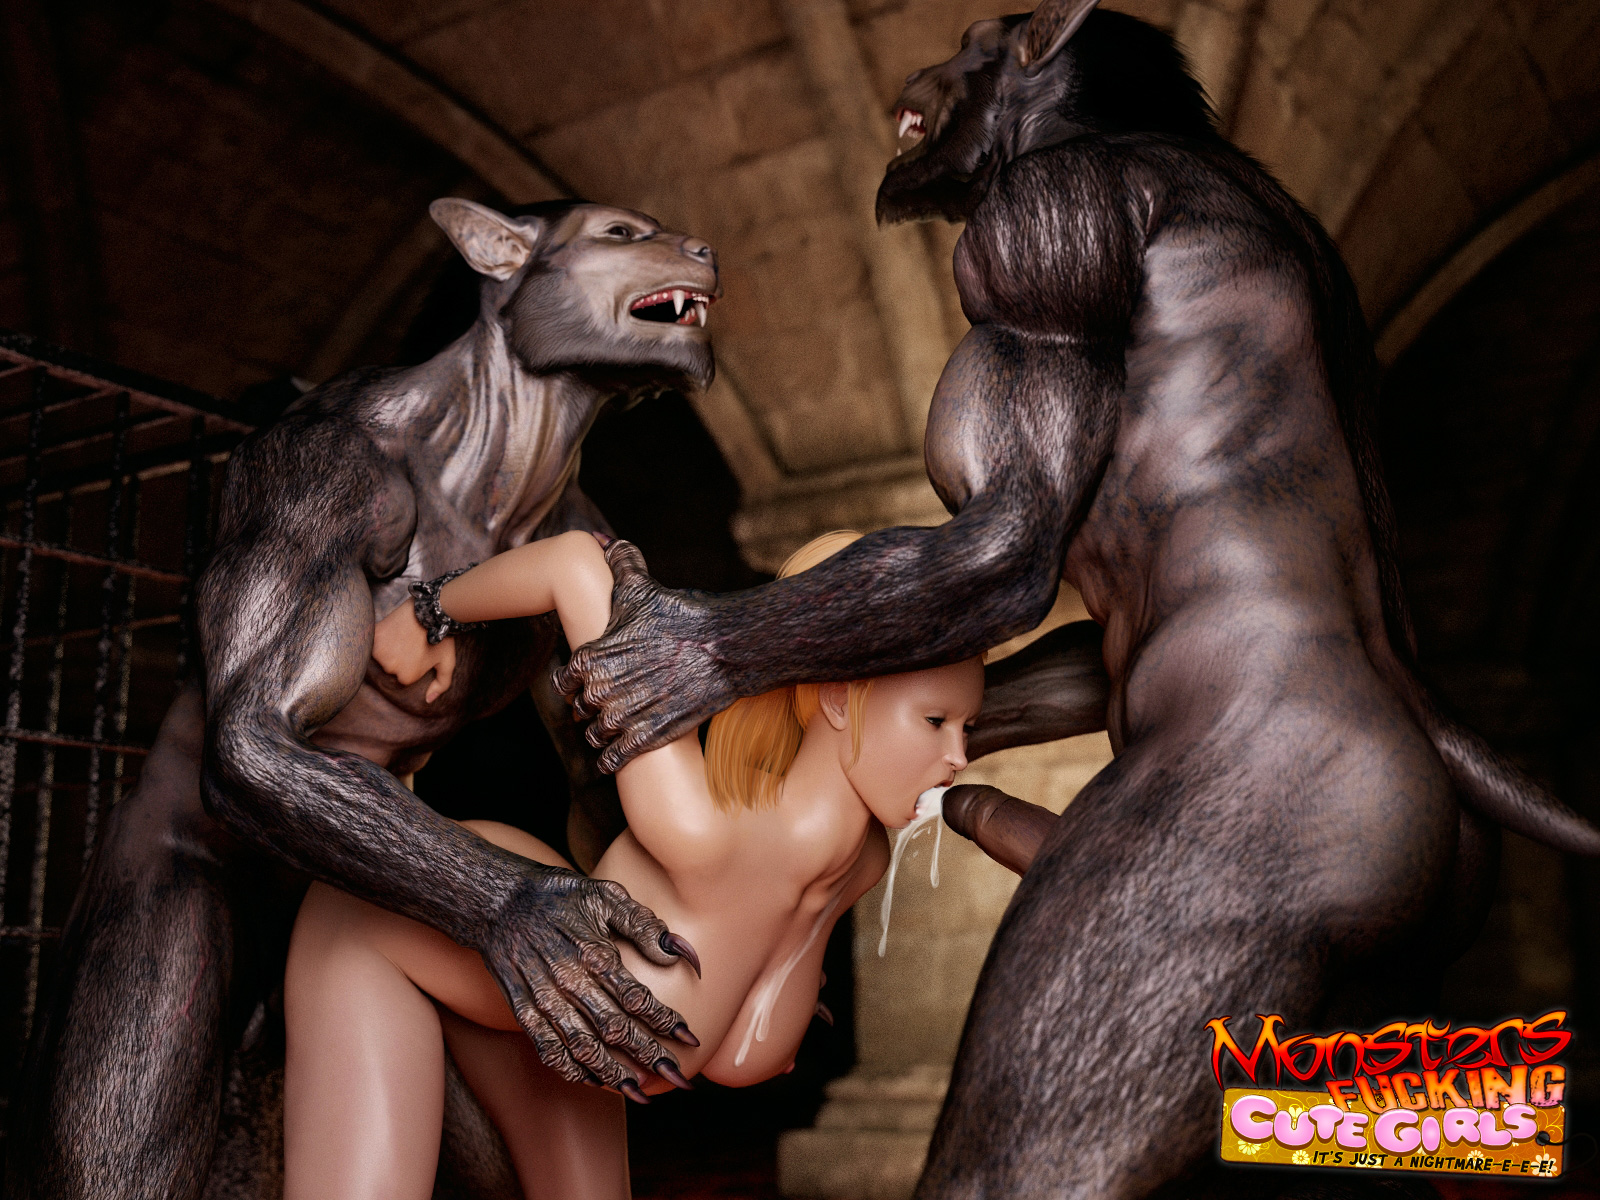 Adult toons vampire pictures porncraft movie